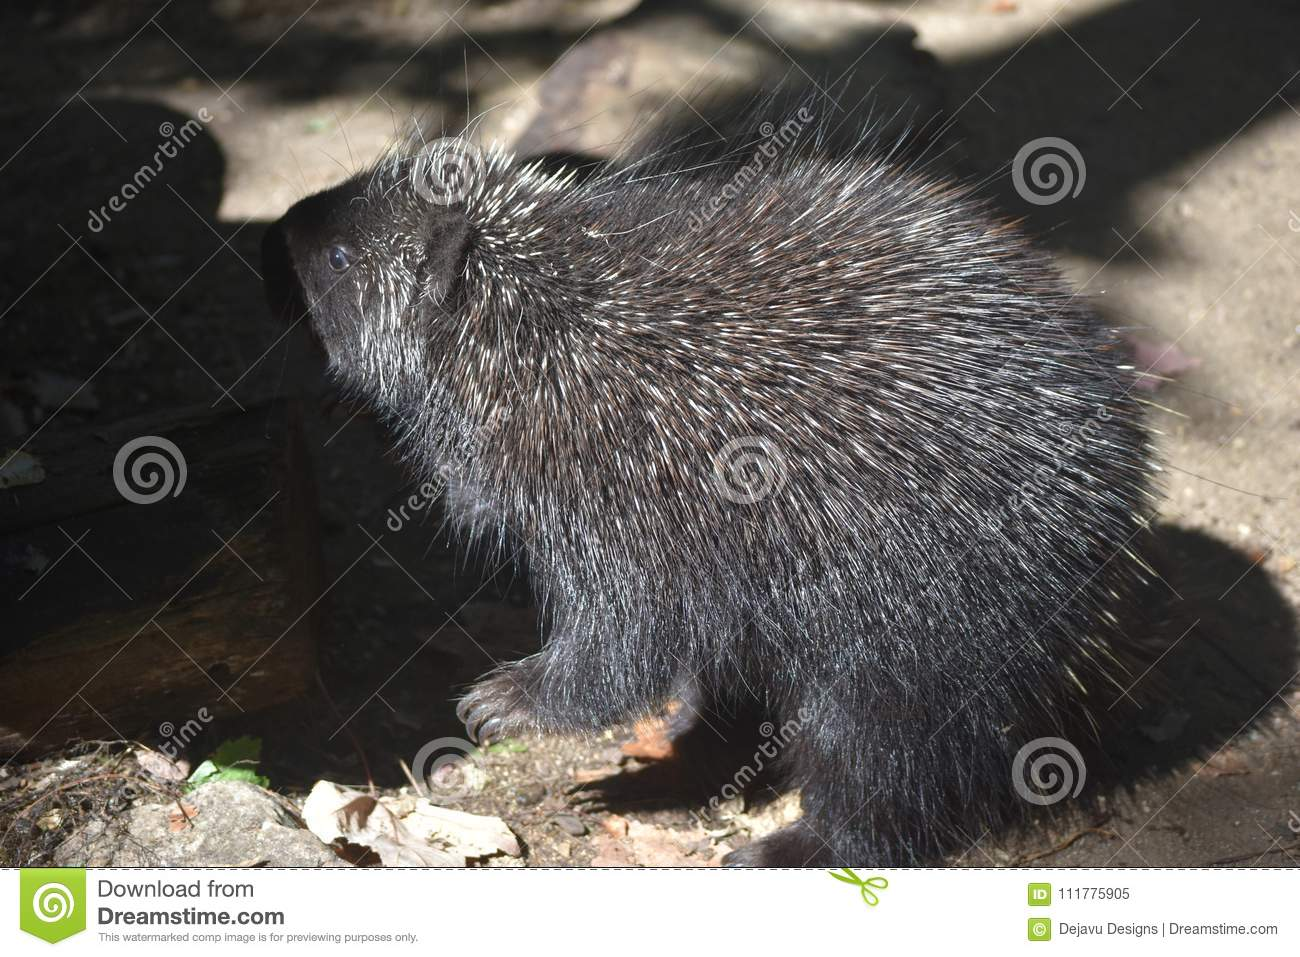 Close up on a porcupine standing next to a log